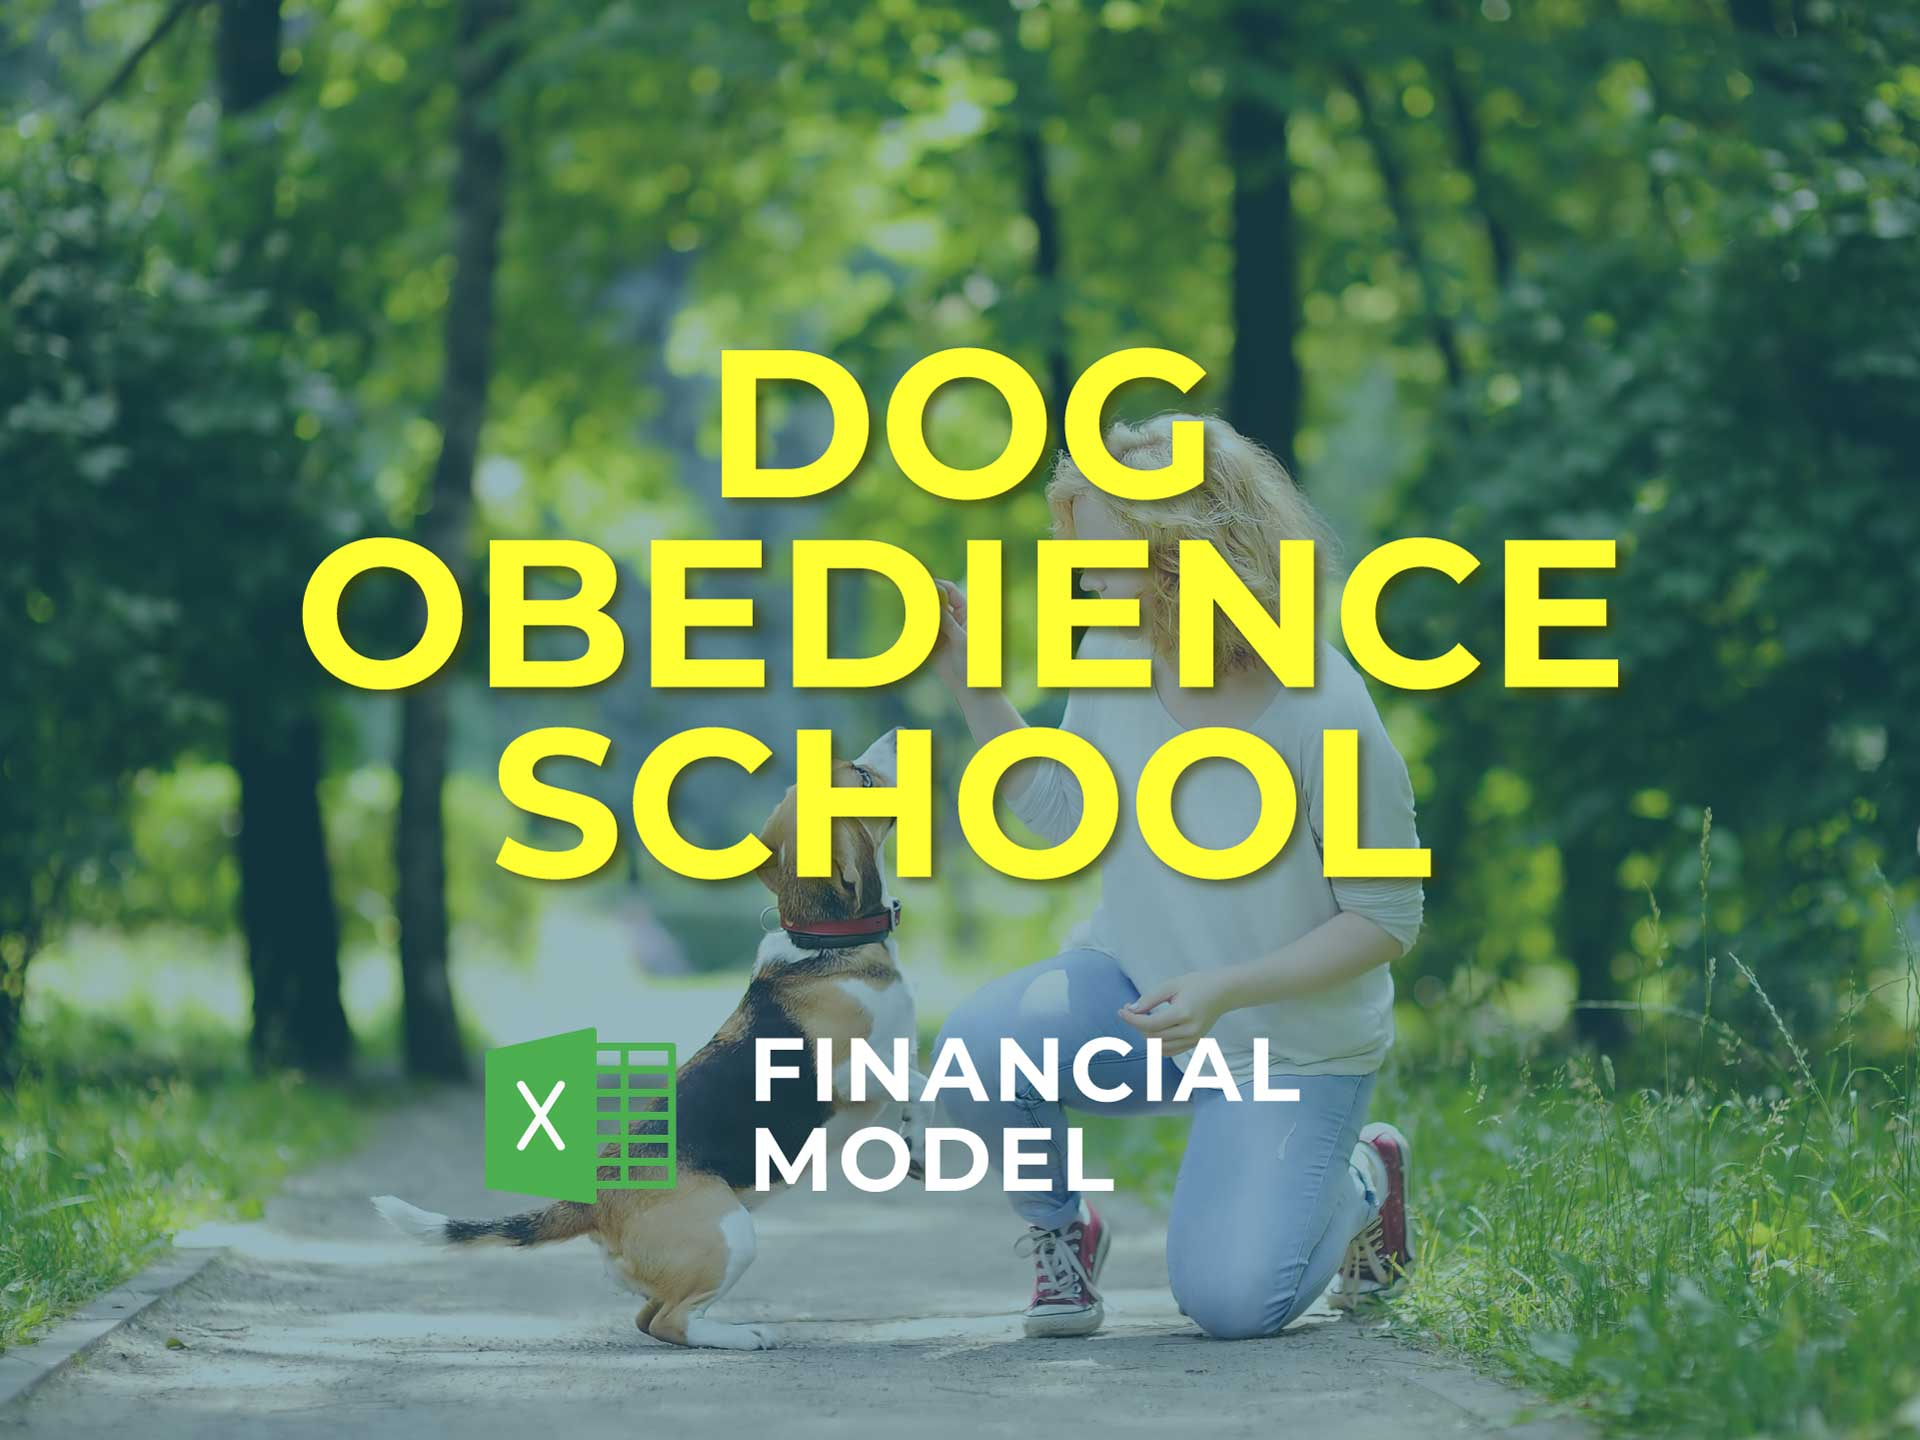 Dog Obedience School